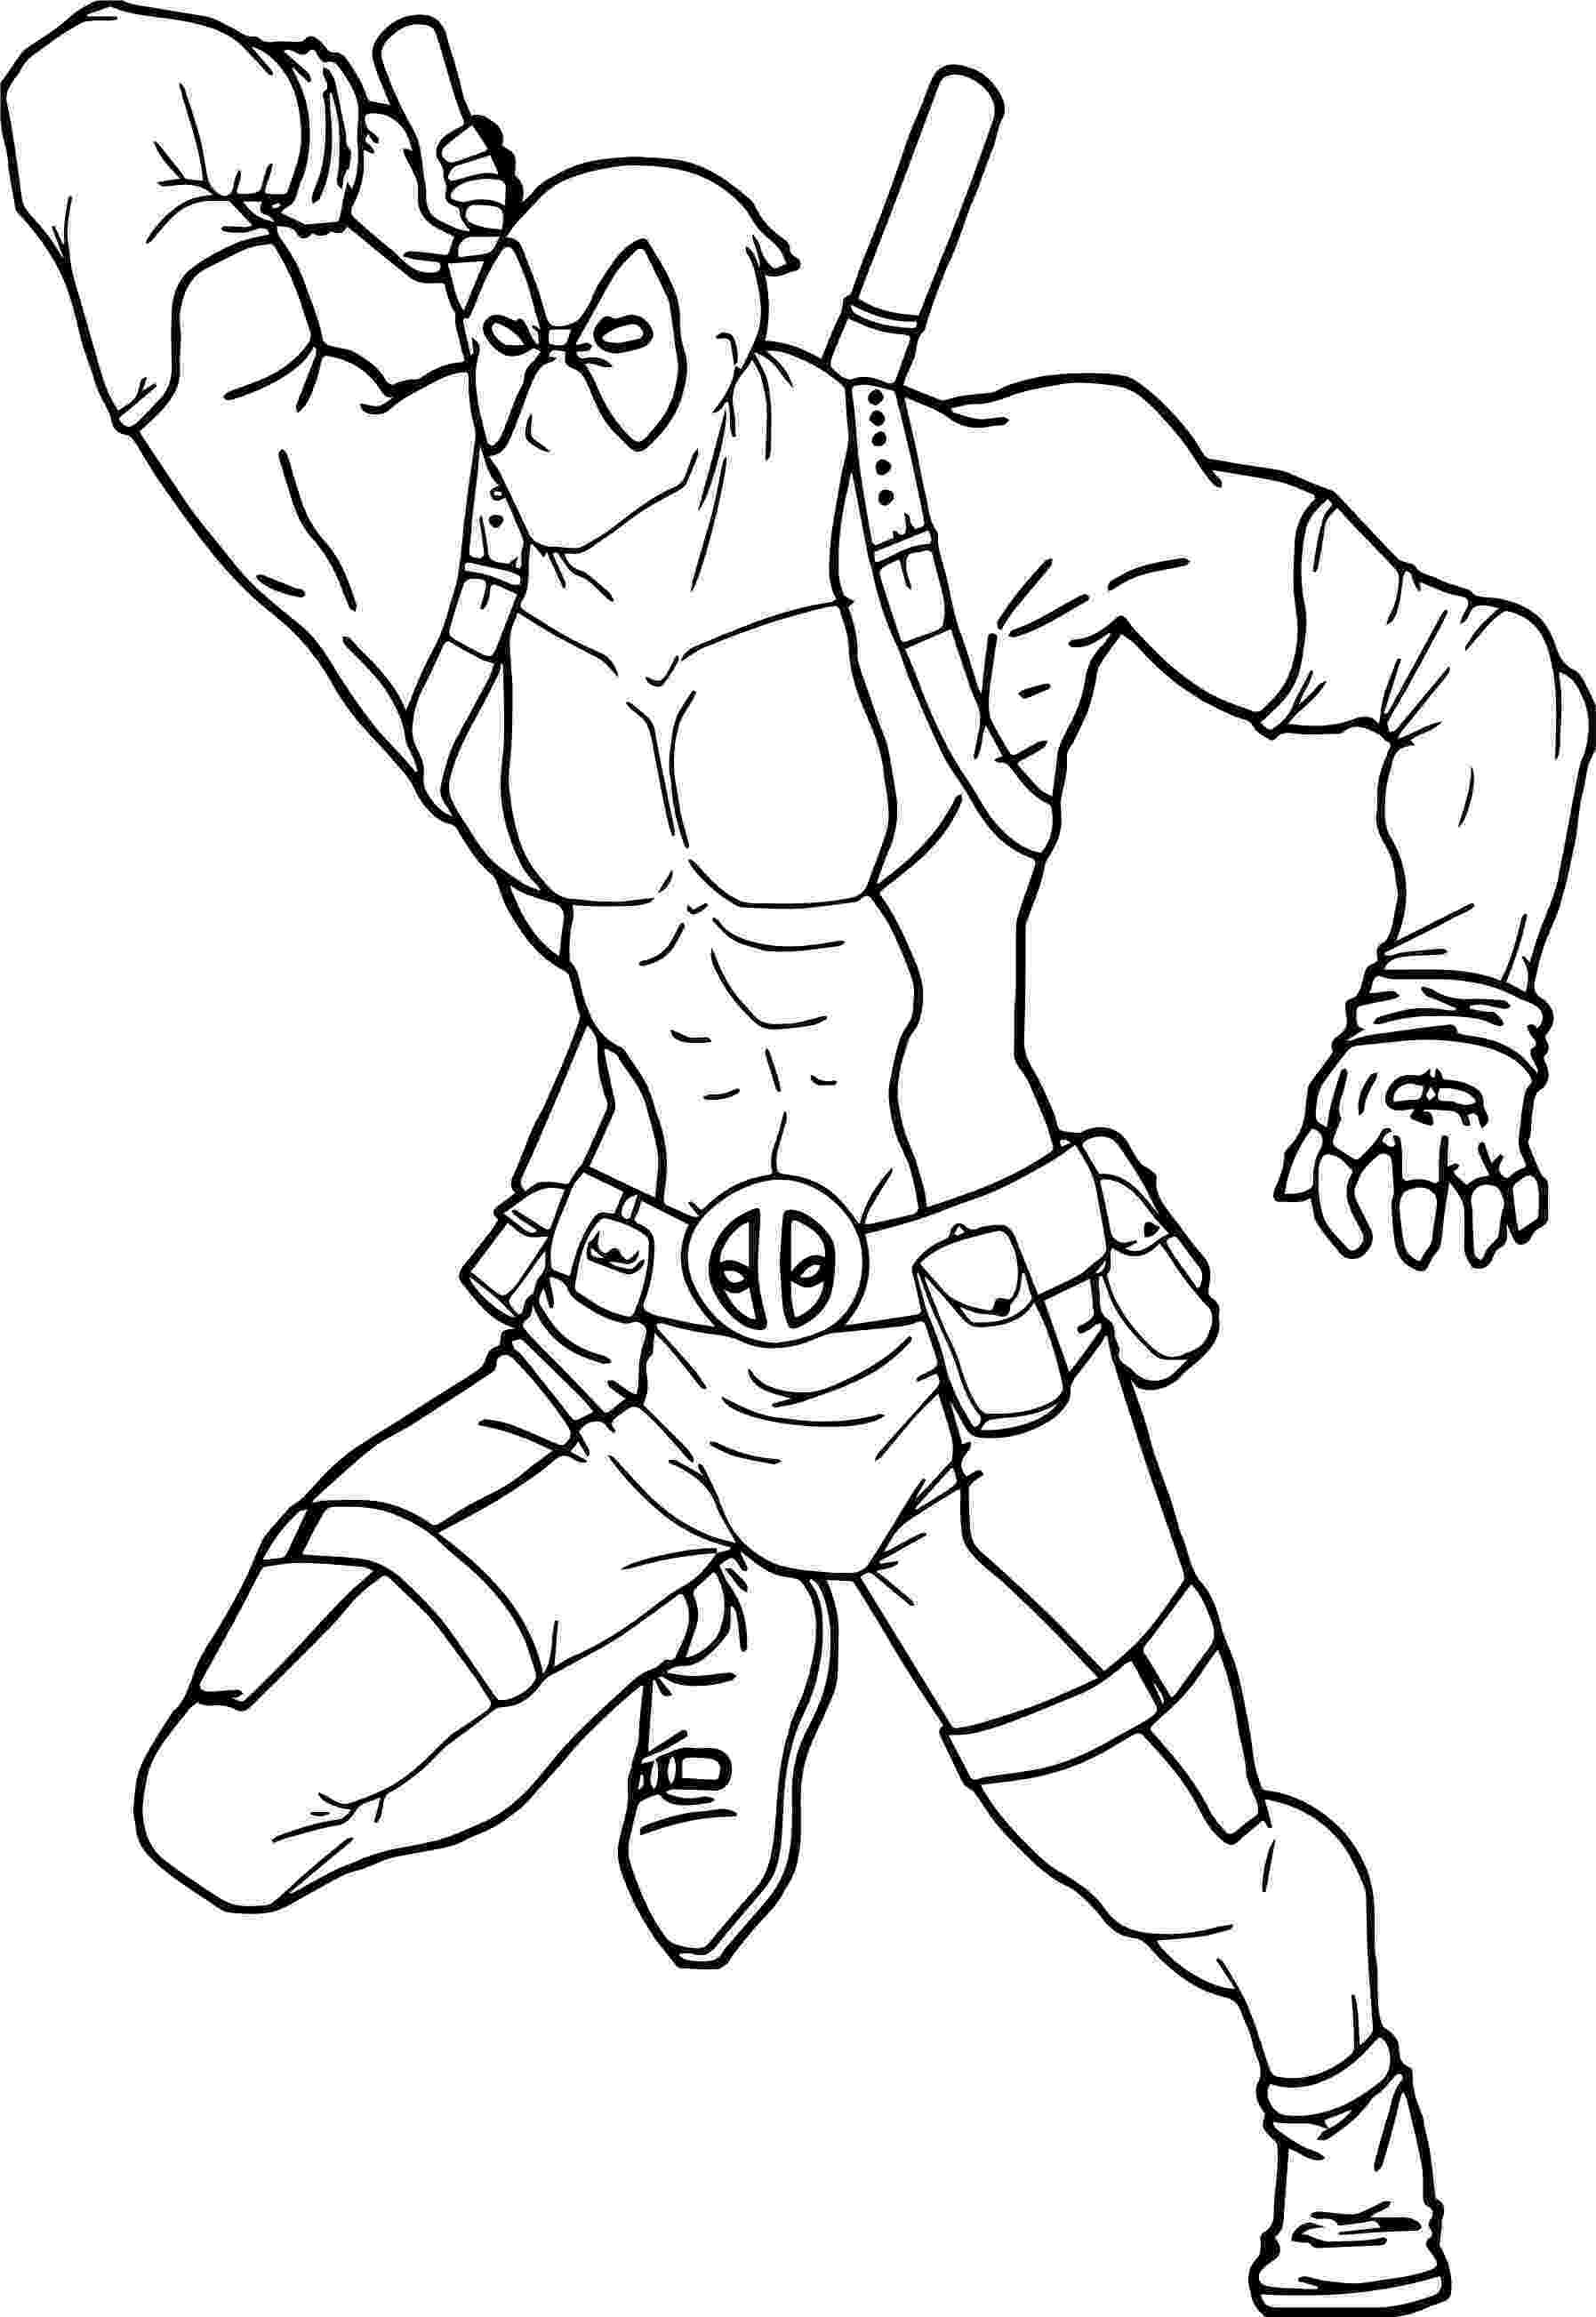 deadpool to color deadpool attack coloring page wecoloringpagecom deadpool to color